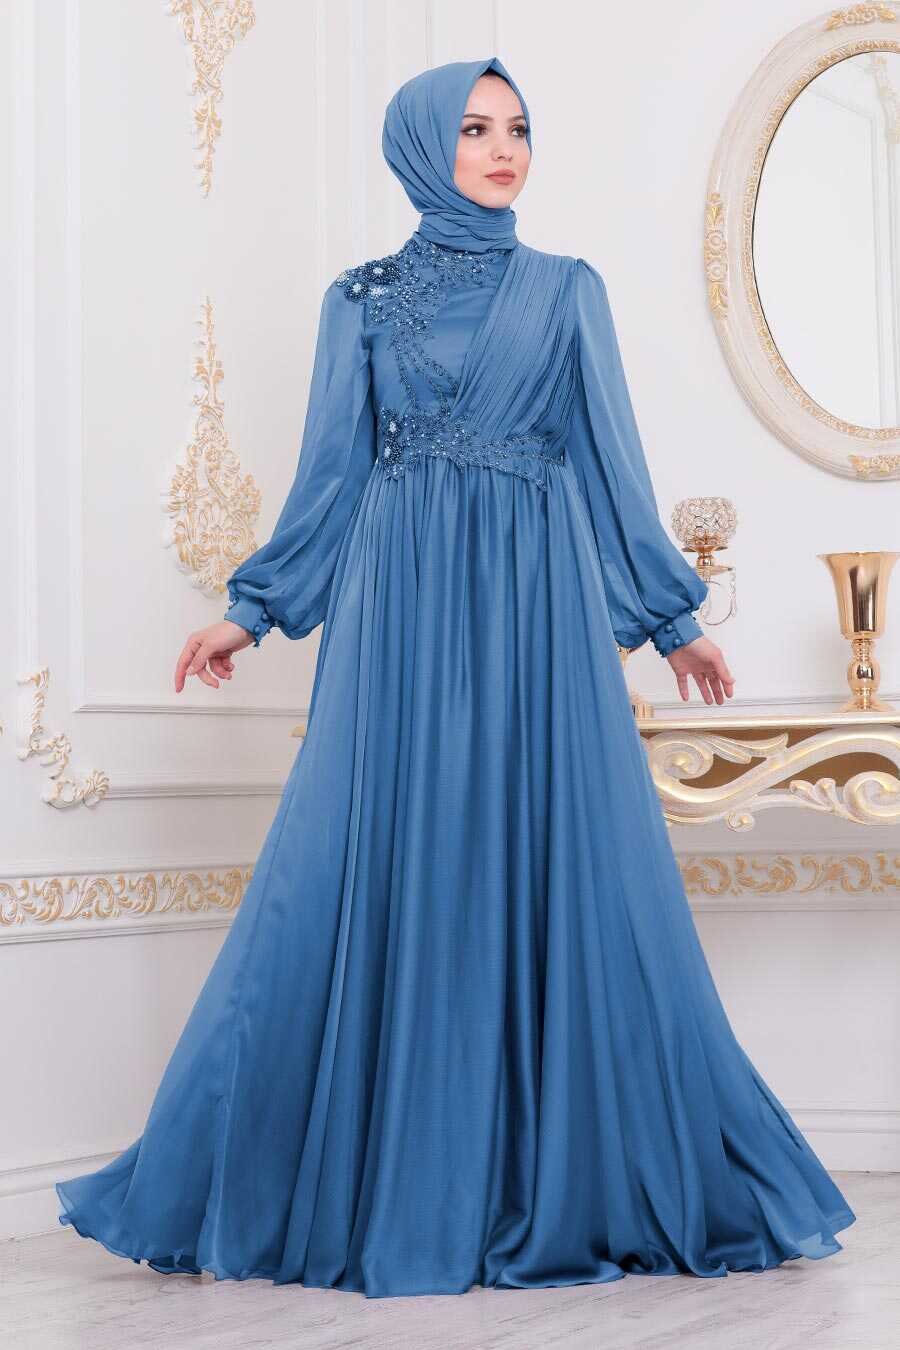 İndigo Blue Hijab Evening Dress 21650IM